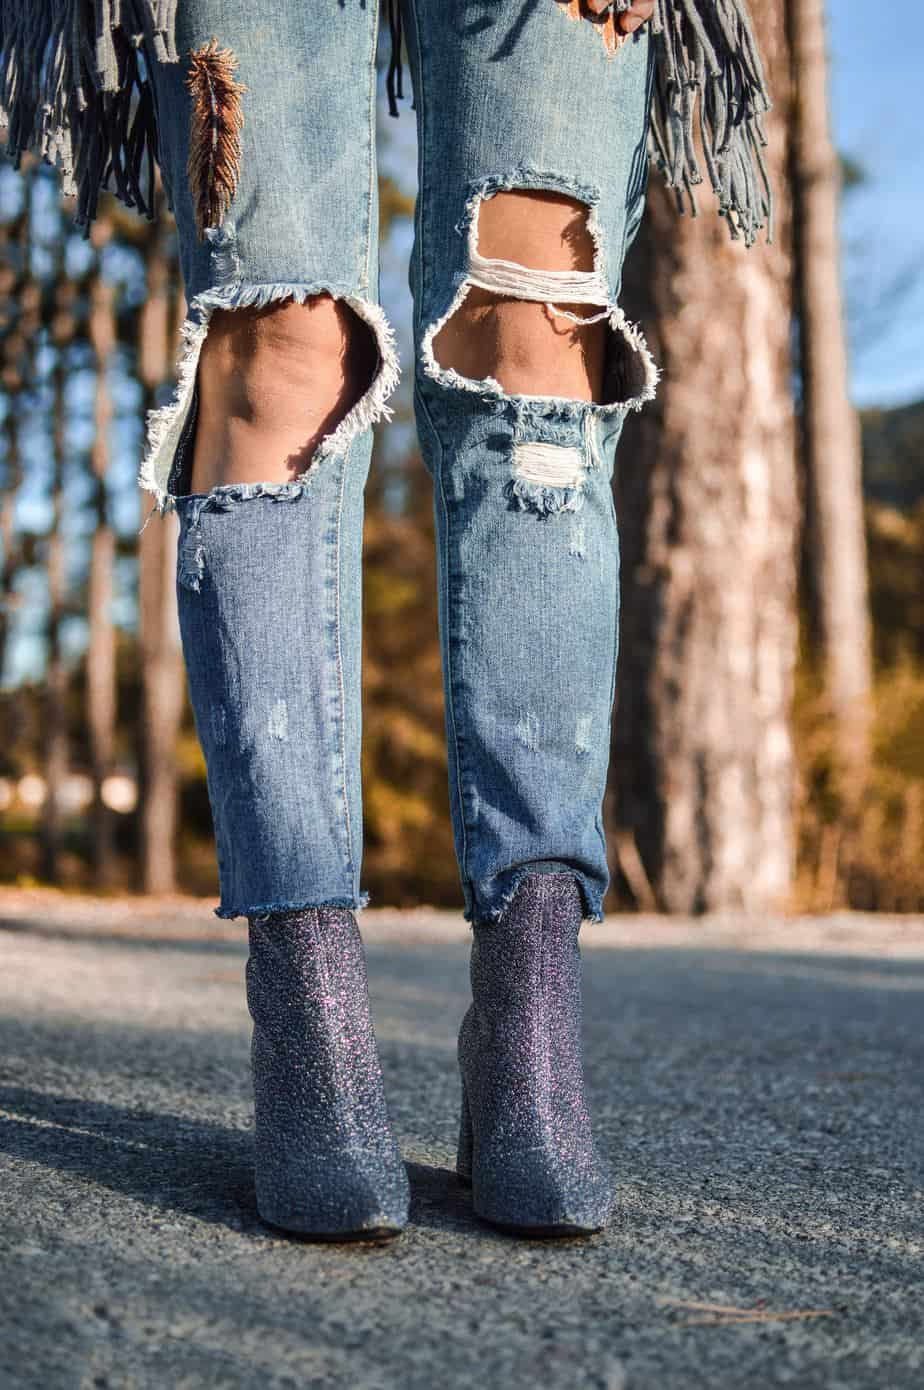 women's knees in ripped jeans